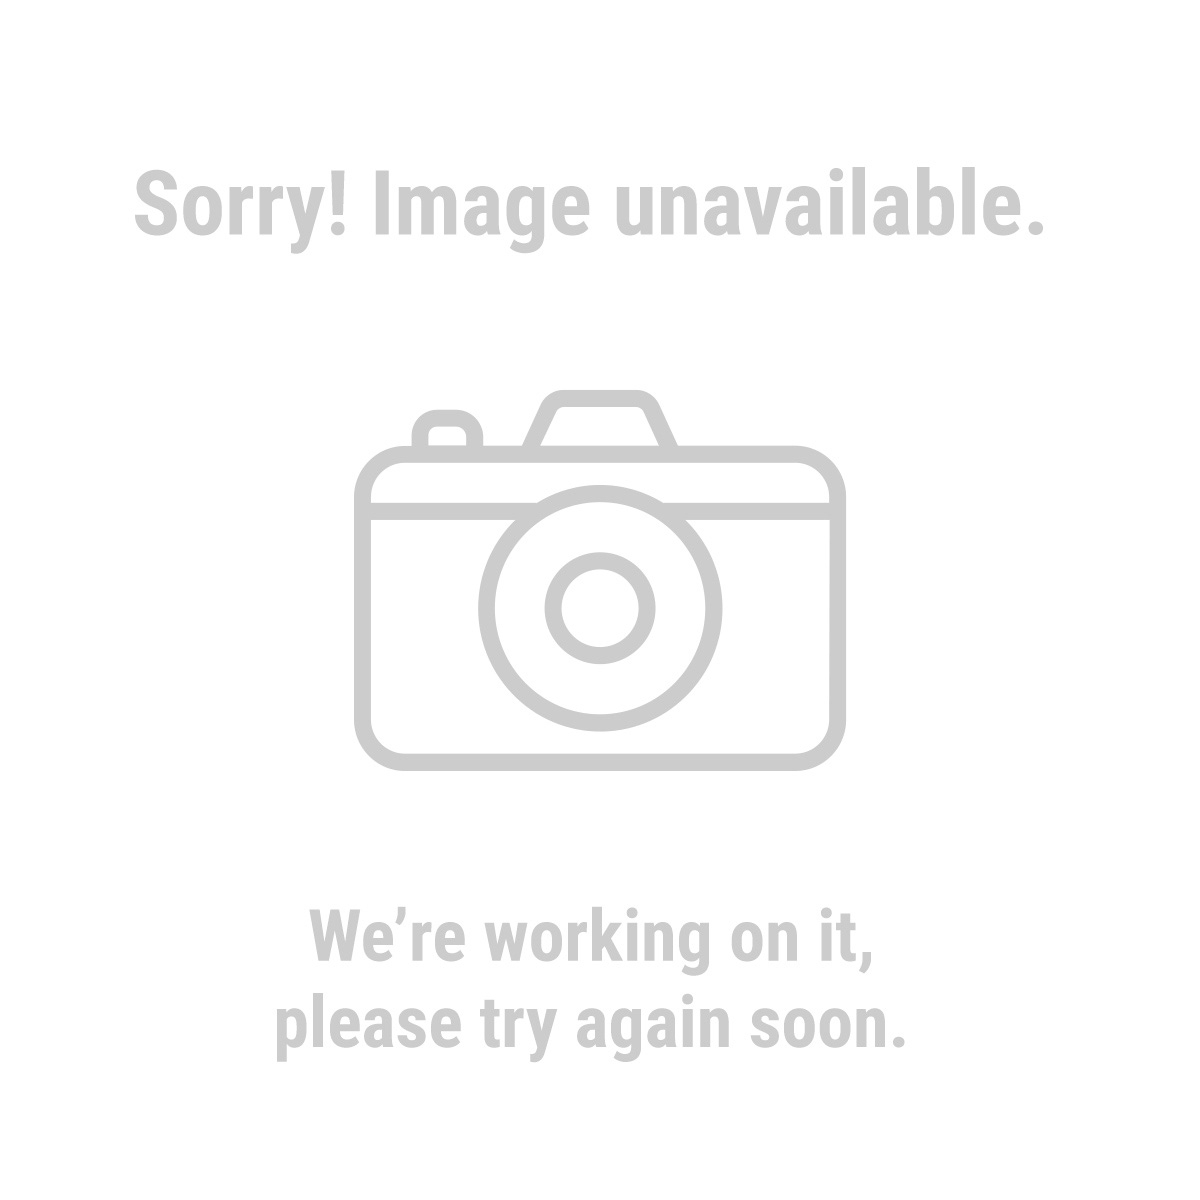 Predator Engines 69736 420 cc OHV Horizontal Shaft Gas Engine - Certified for California